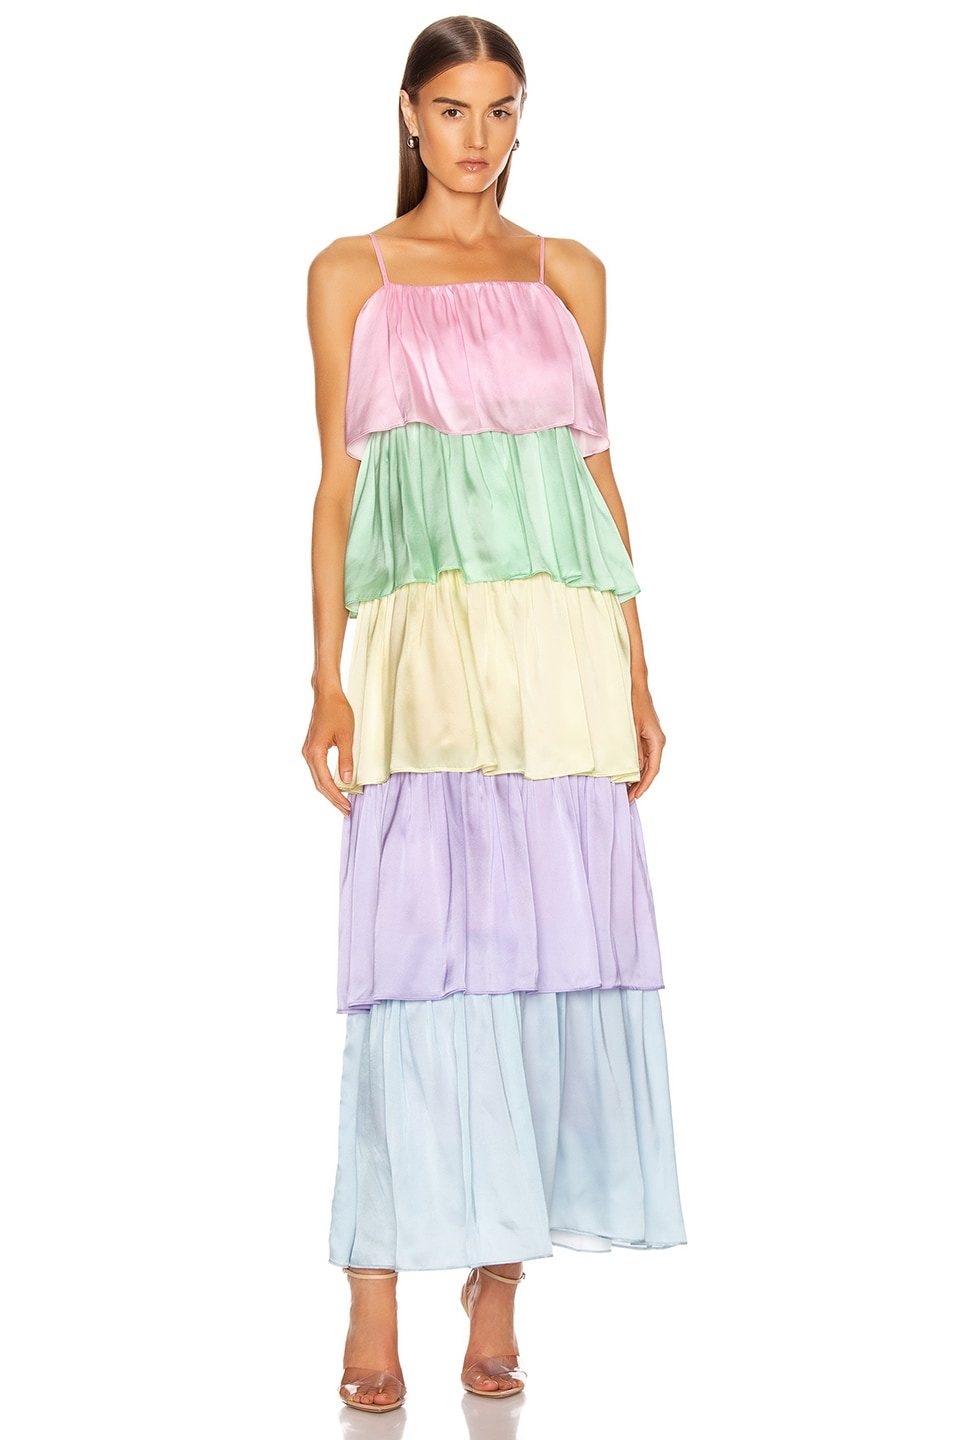 Image 1 of Olivia Rubin Cici Dress in Neapolitan Colorblock